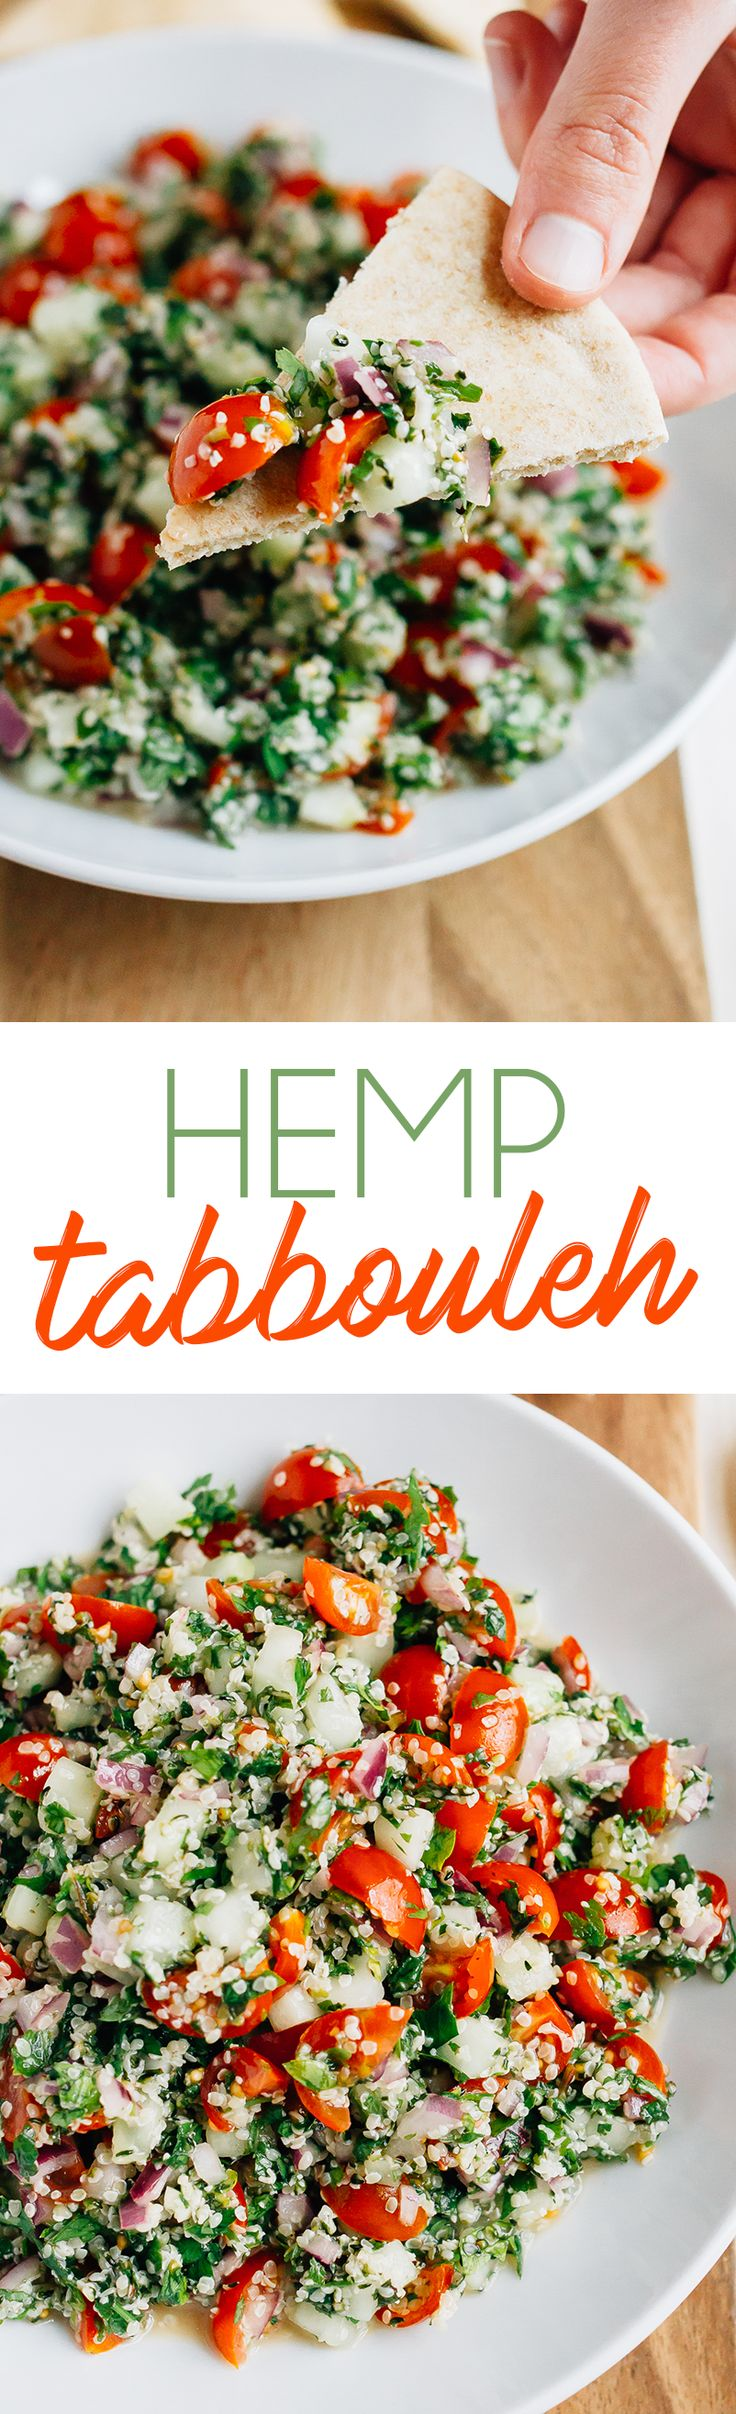 A fun spin on traditional tabbouleh, this hemp tabbouleh is loaded with fresh herbs, veggies and protein. Plus, it's vegan, grain-free and gluten-free. Made in partnership with @manitobaharvest. #ad